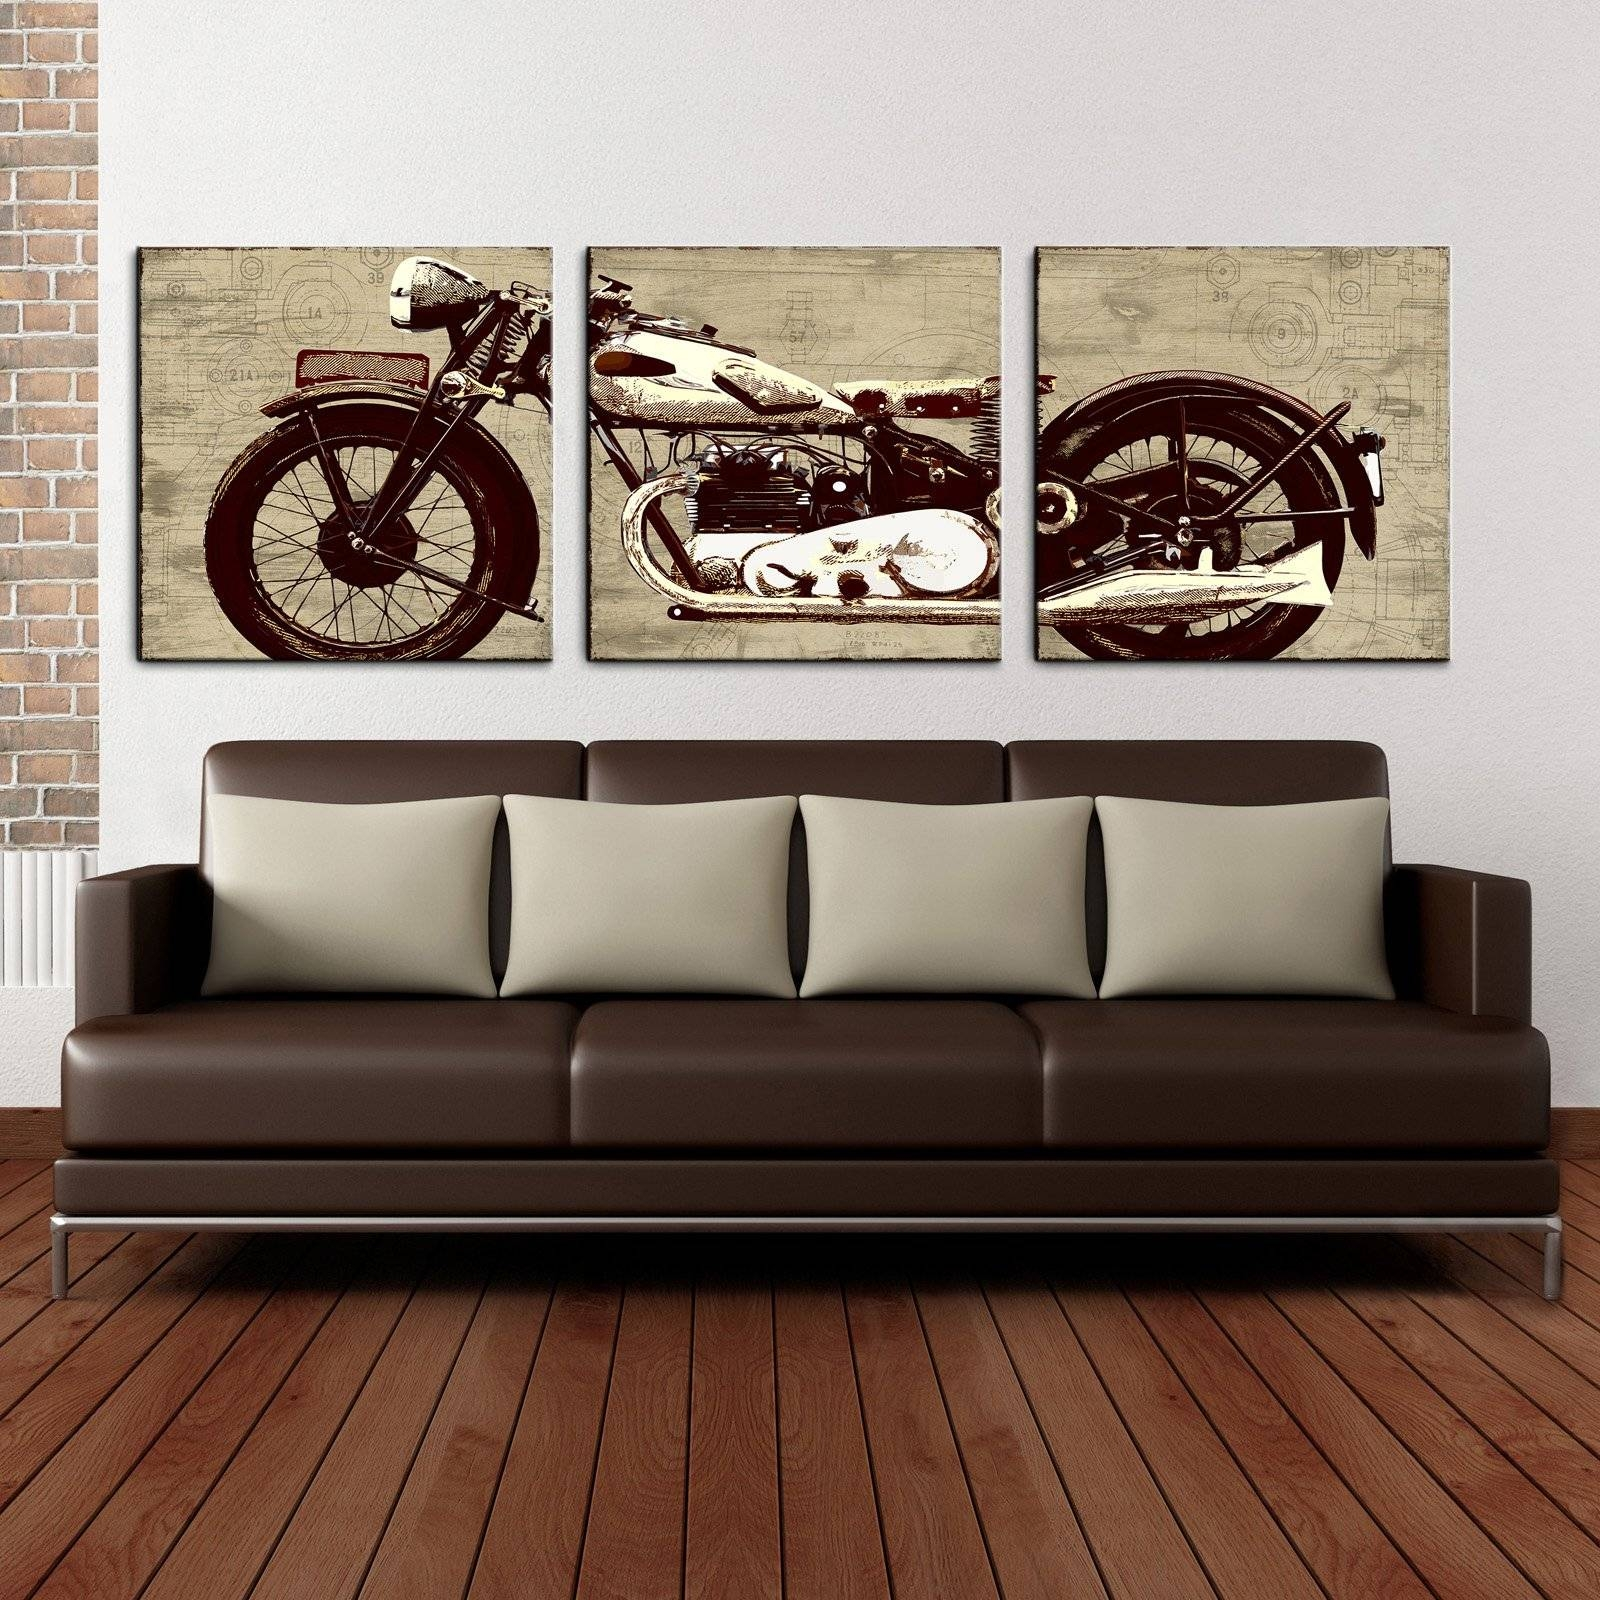 Motorcycle 24 X 72 Canvas Art Print Triptych | Hayneedle With Regard To Current Motorcycle Metal Wall Art (View 11 of 20)